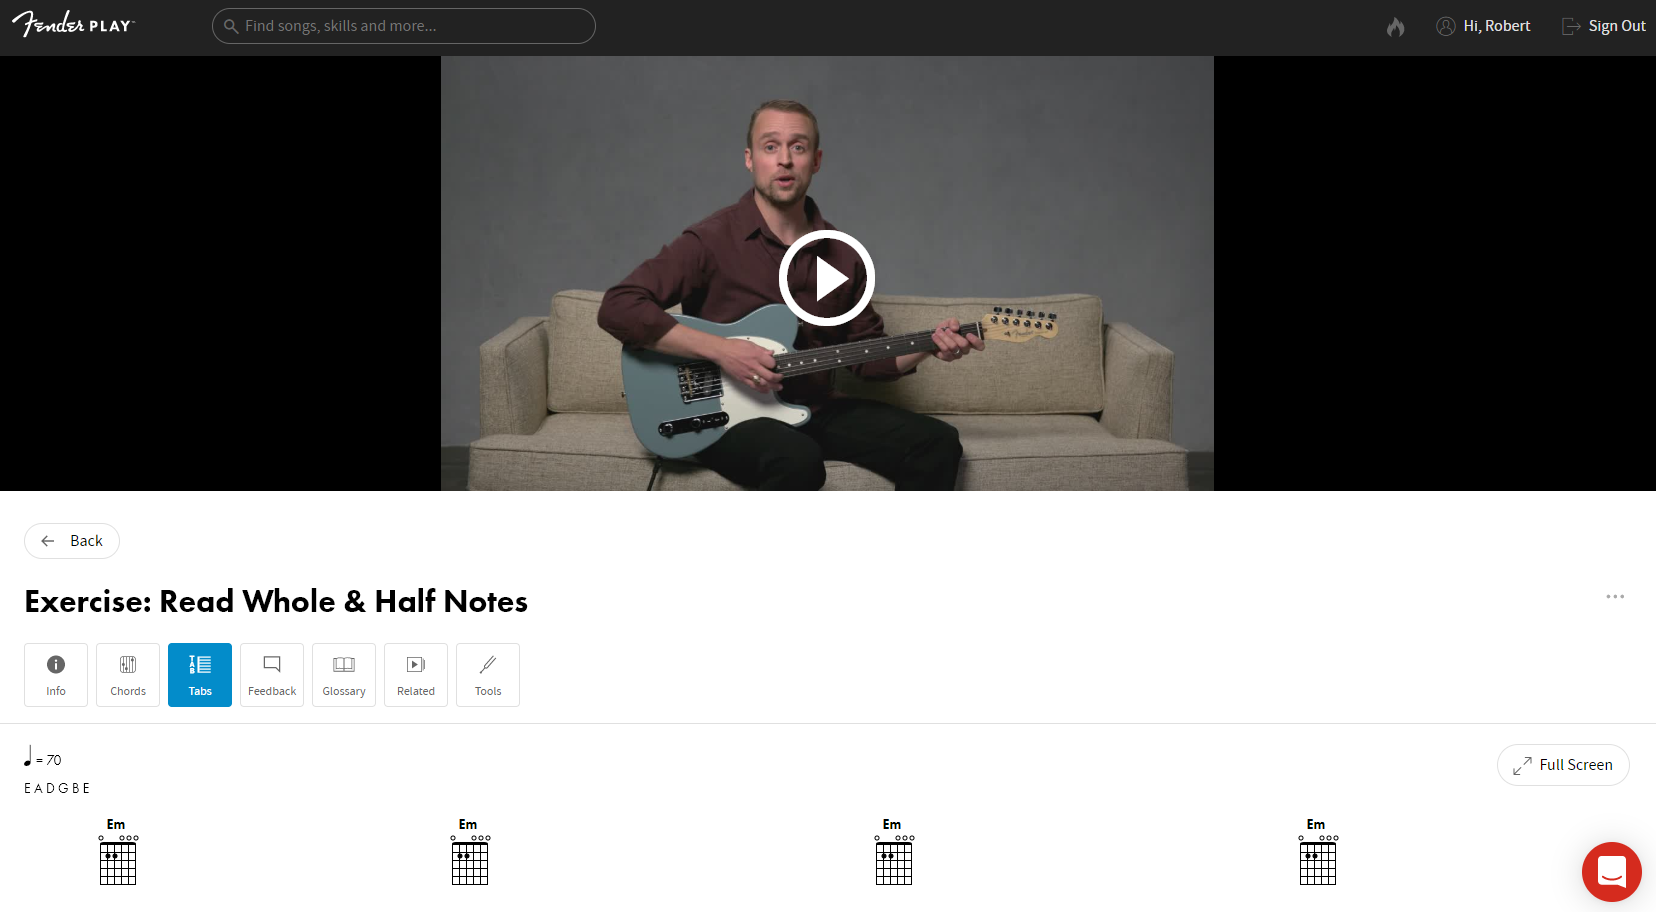 Fender Play Review Video Interface